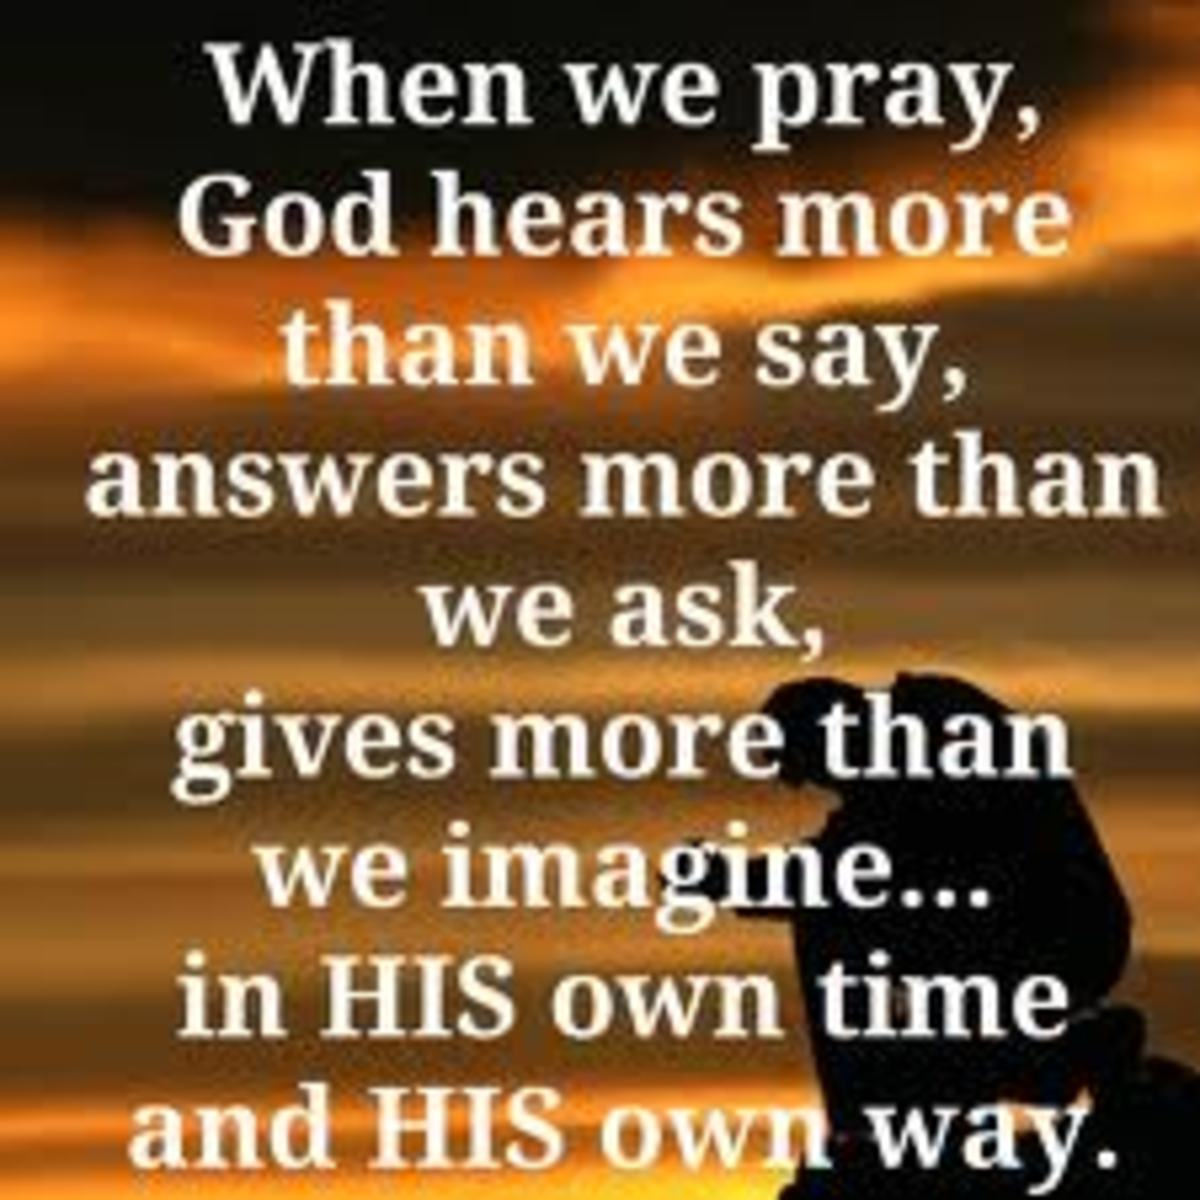 We need to believe in God and pray to God, it would be the right way for us believers to feel that we are doing something worthwhile.